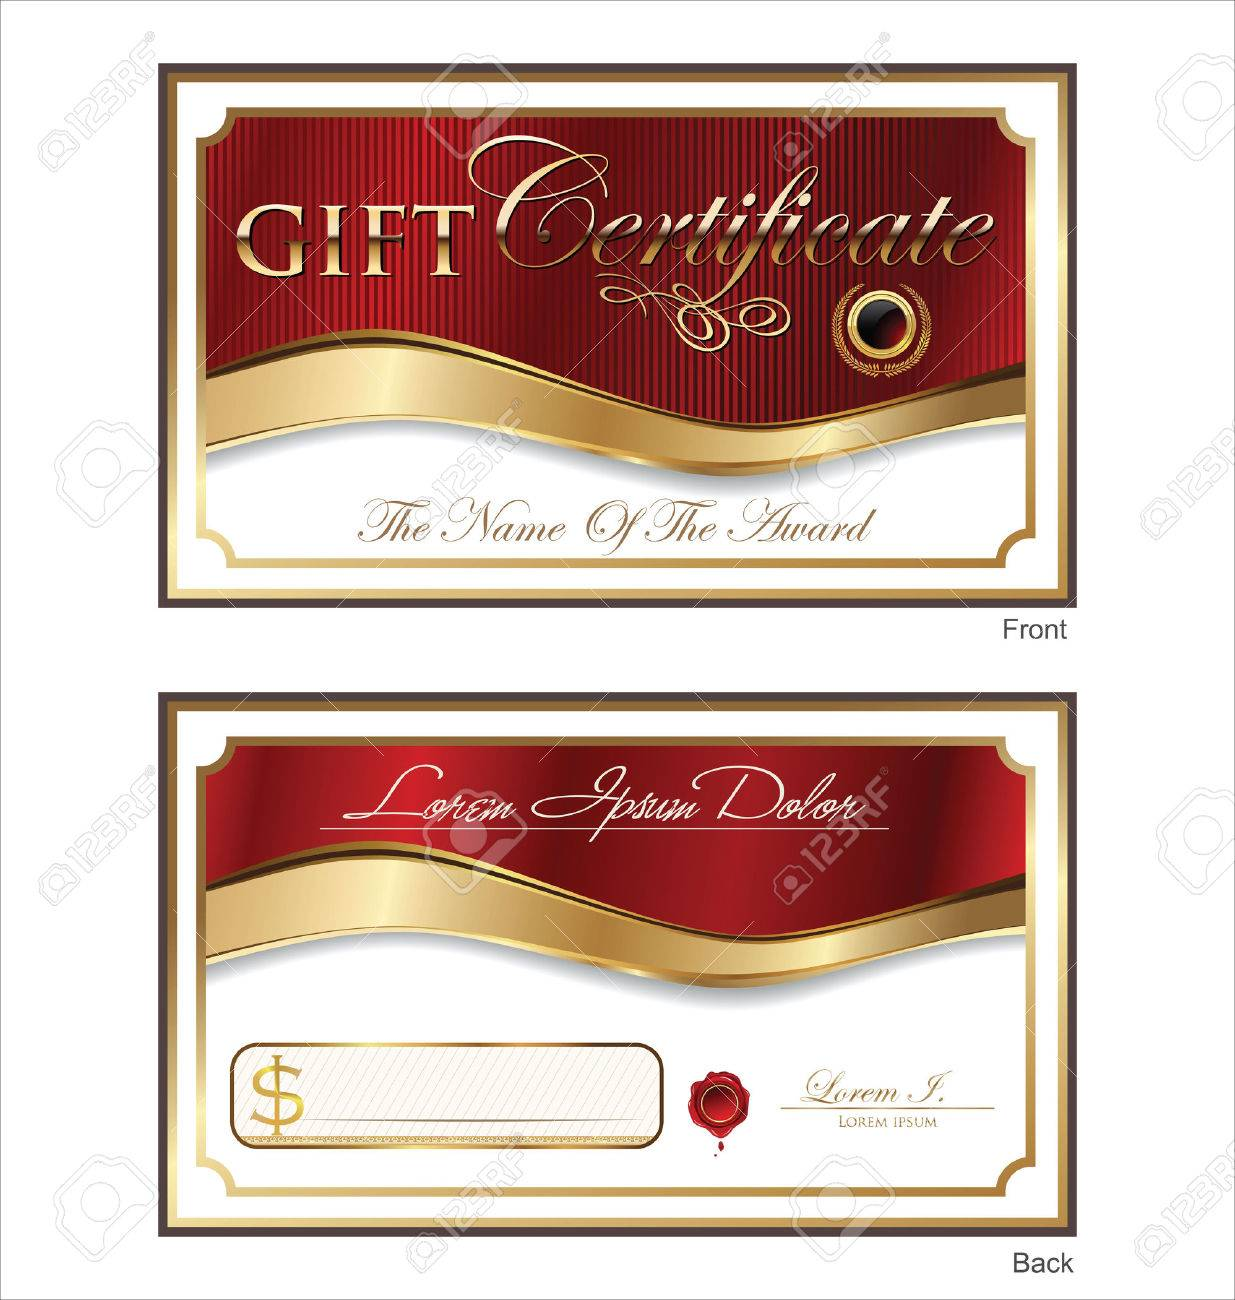 voucher gift certificate coupon template royalty cliparts voucher gift certificate coupon template stock vector 25041102